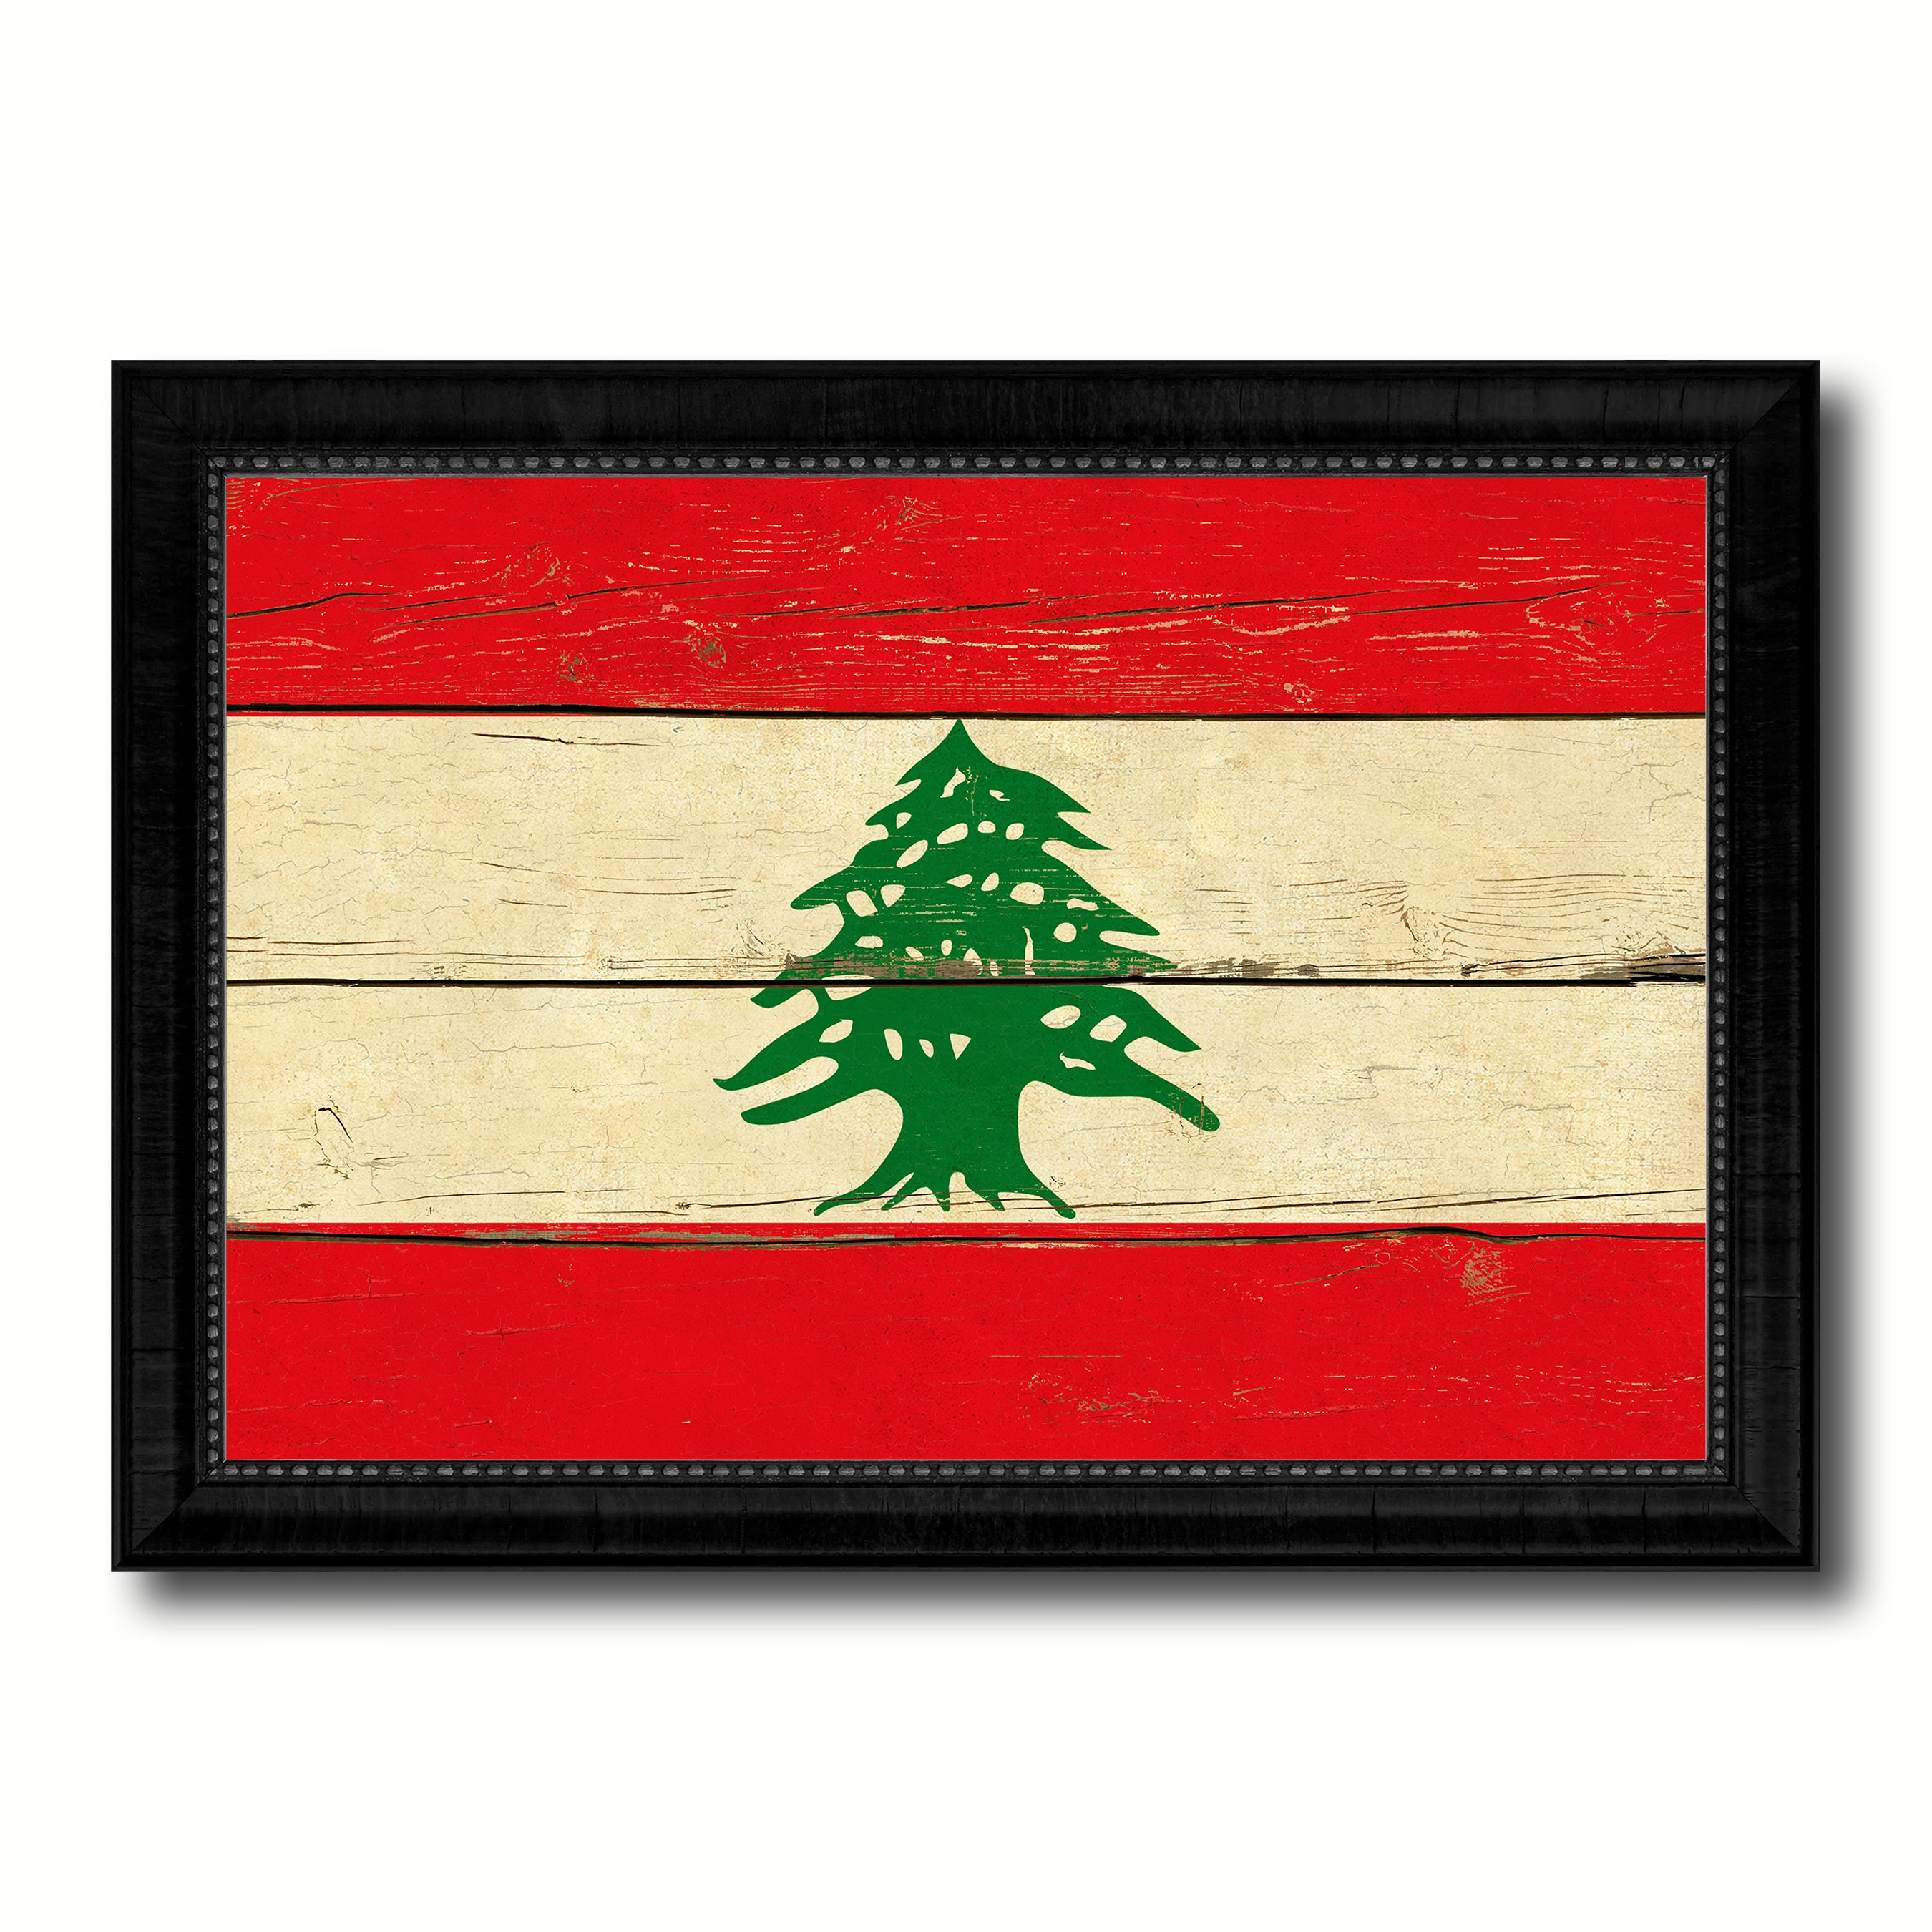 Lebanon Country Flag Vintage Canvas Print with Black Picture Frame Home Decor Gifts Wall Art Decoration Artwork